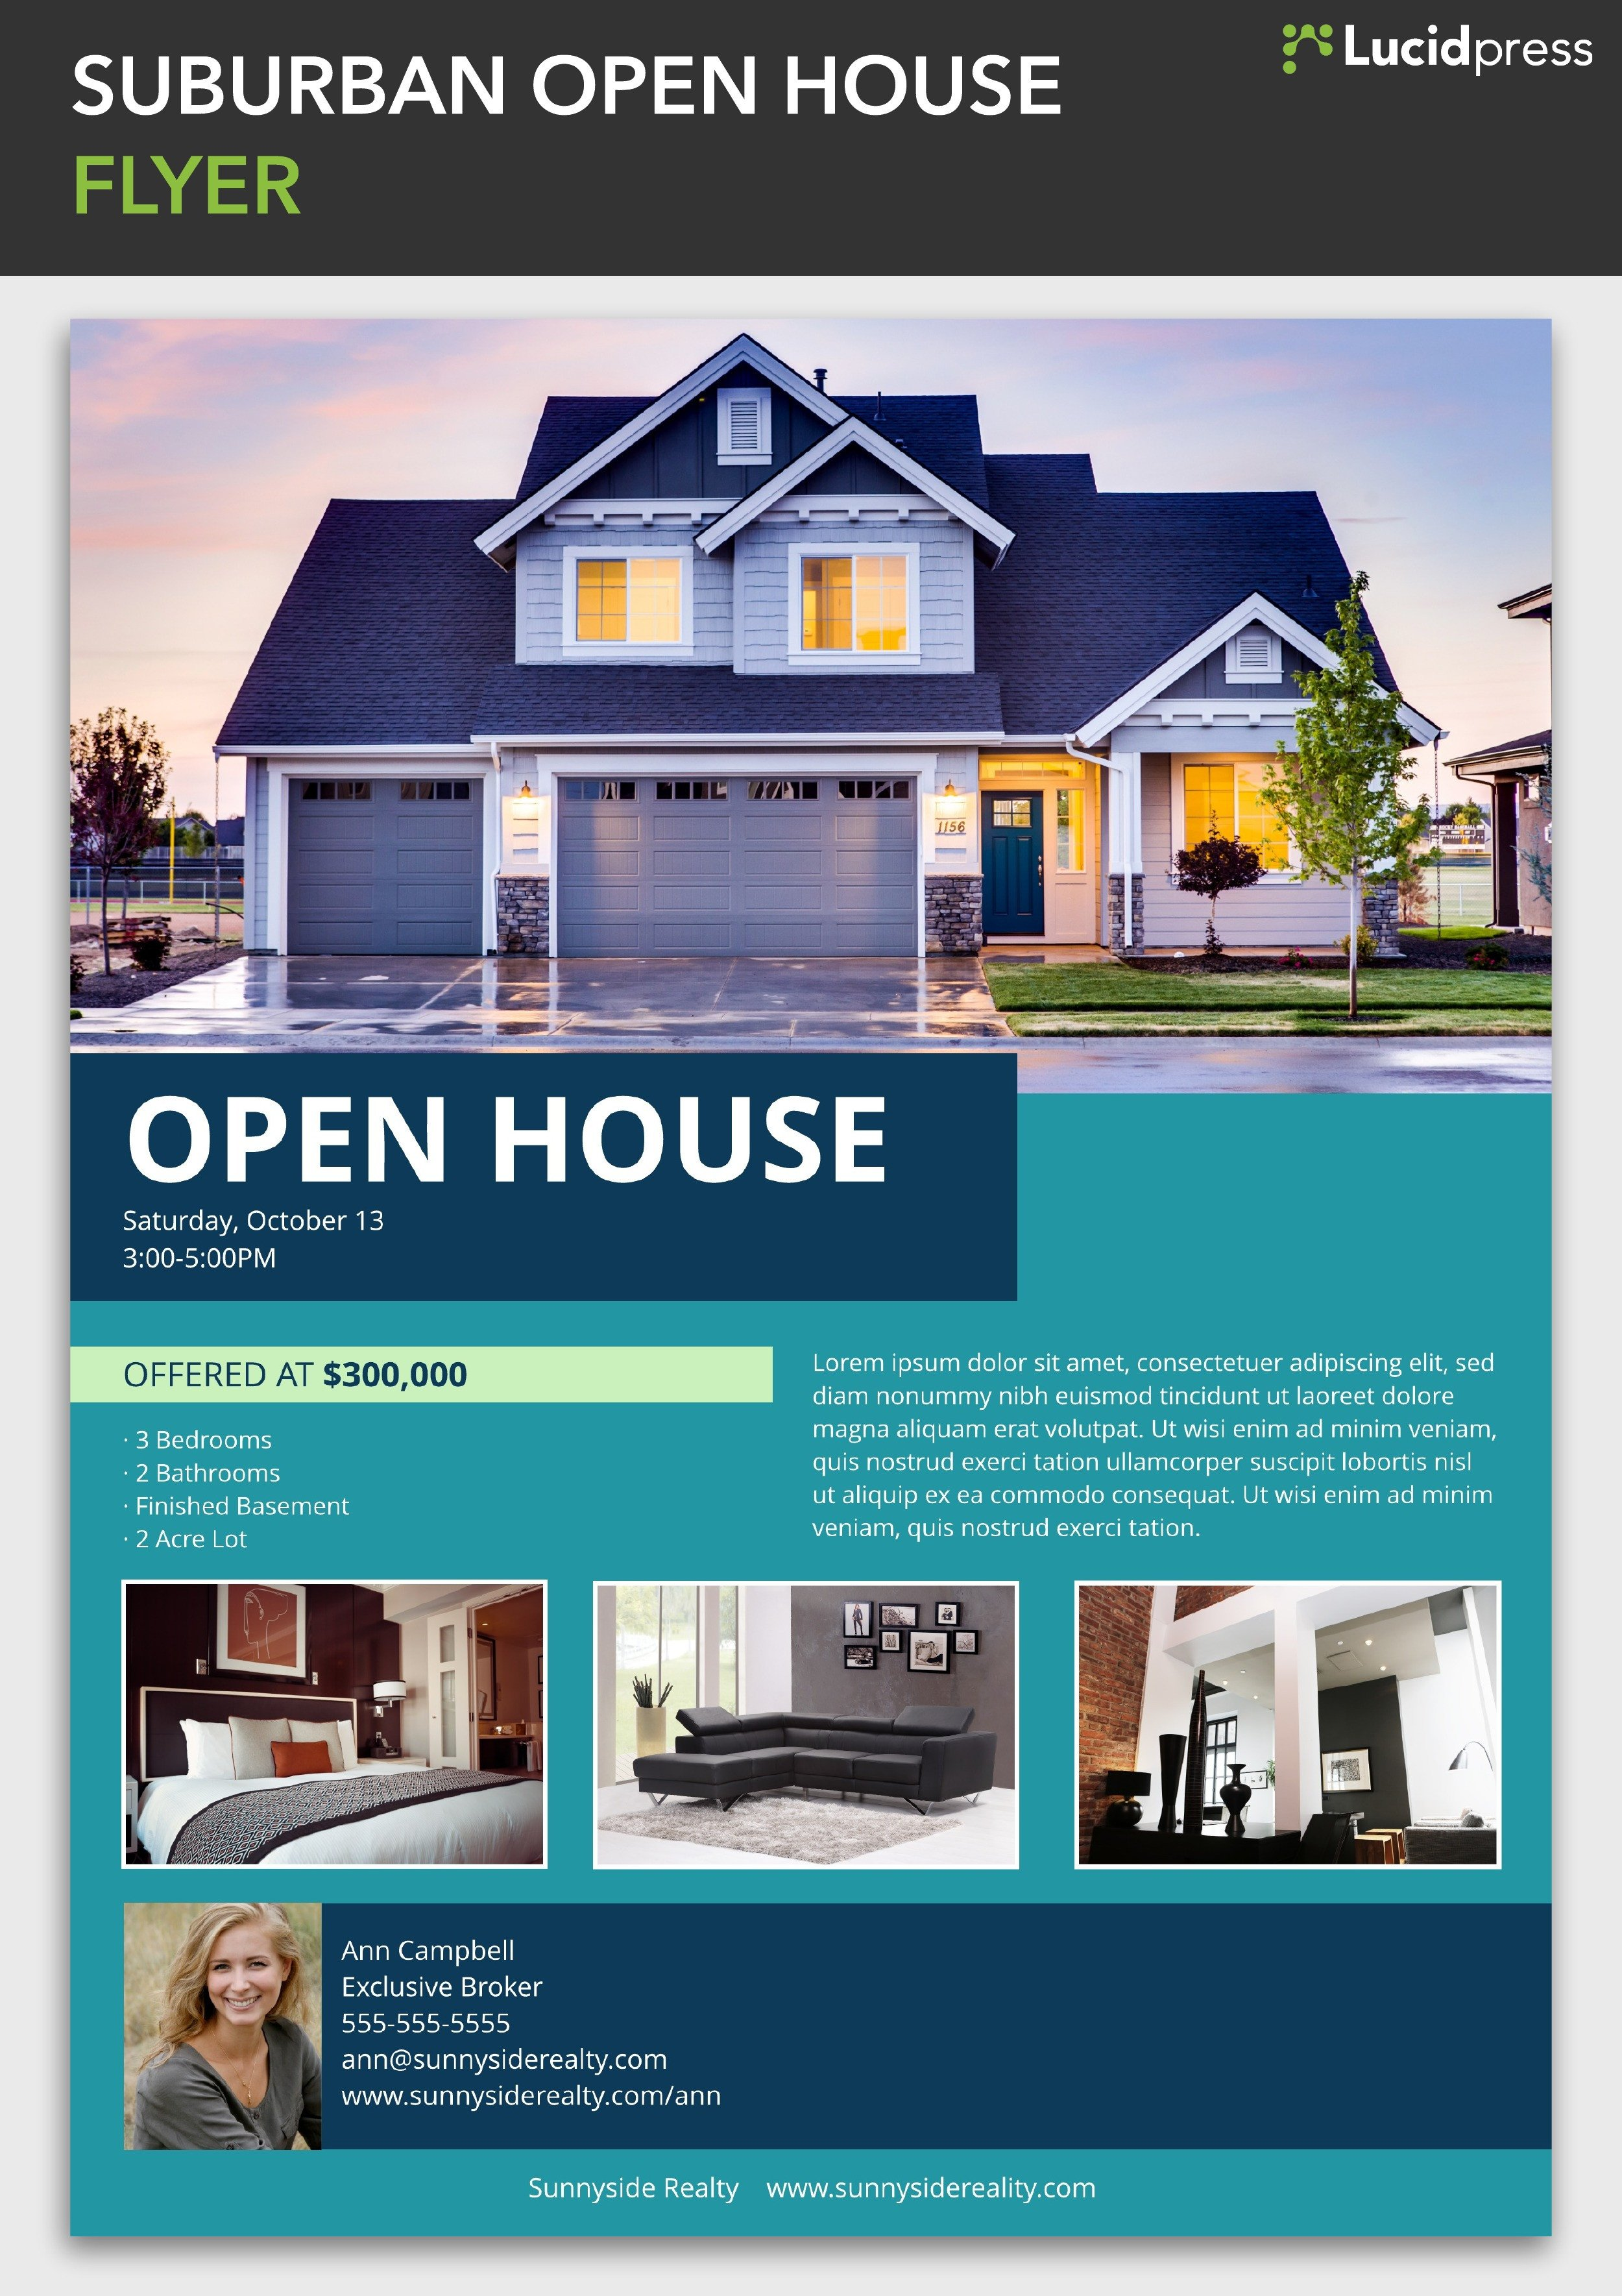 Open House Flyer Templates How to Build A social Media Campaign for Real Estate